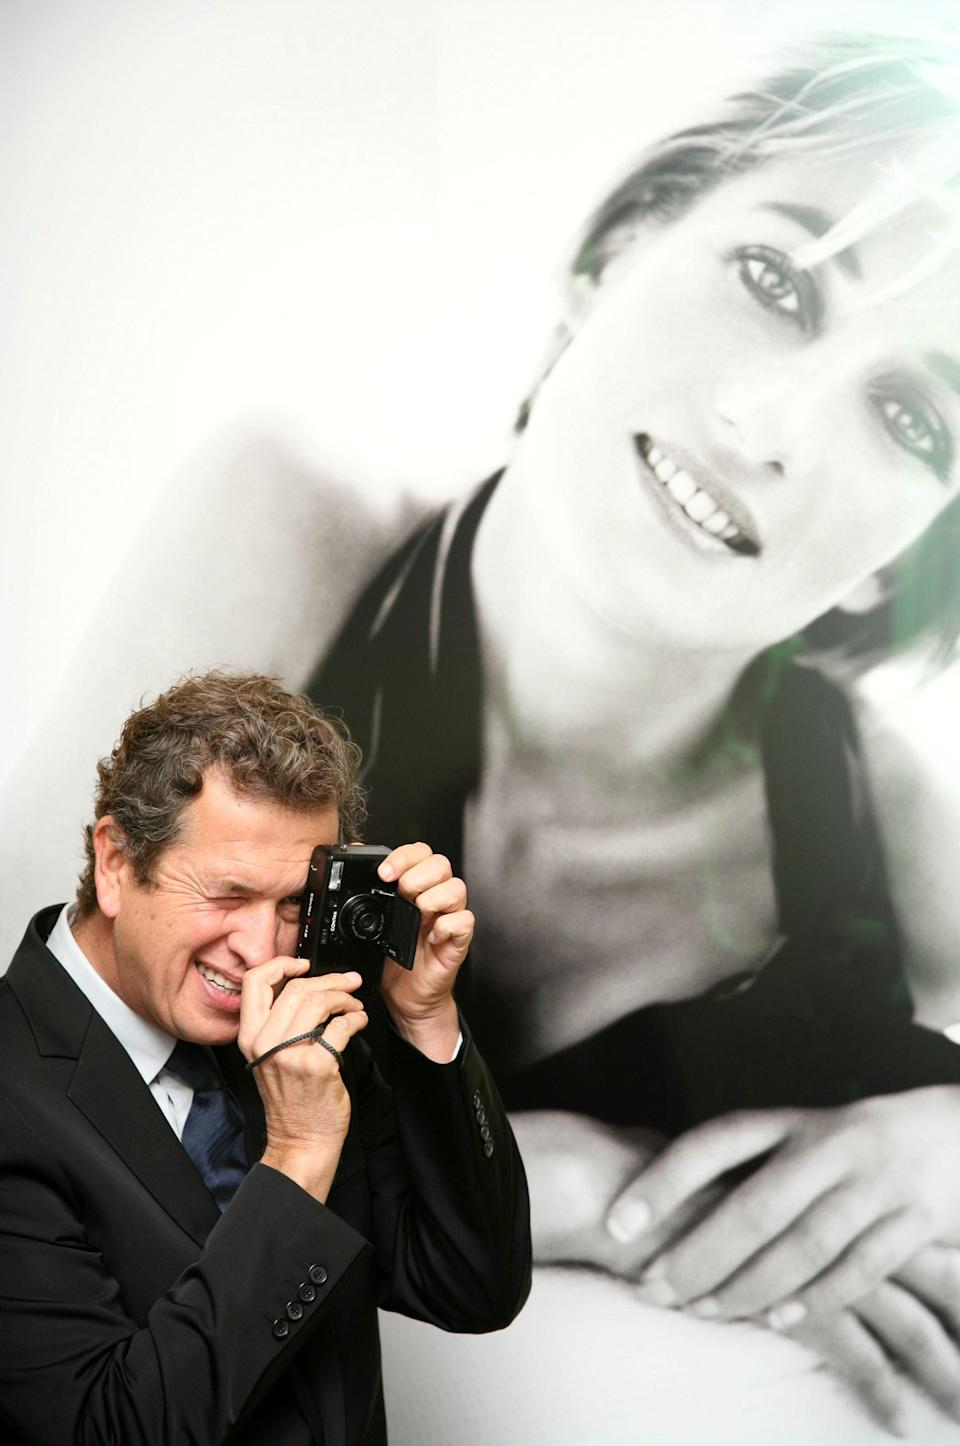 The 62-year-old photographer took the most famous photos of Princess Diana [Photo: Rex]